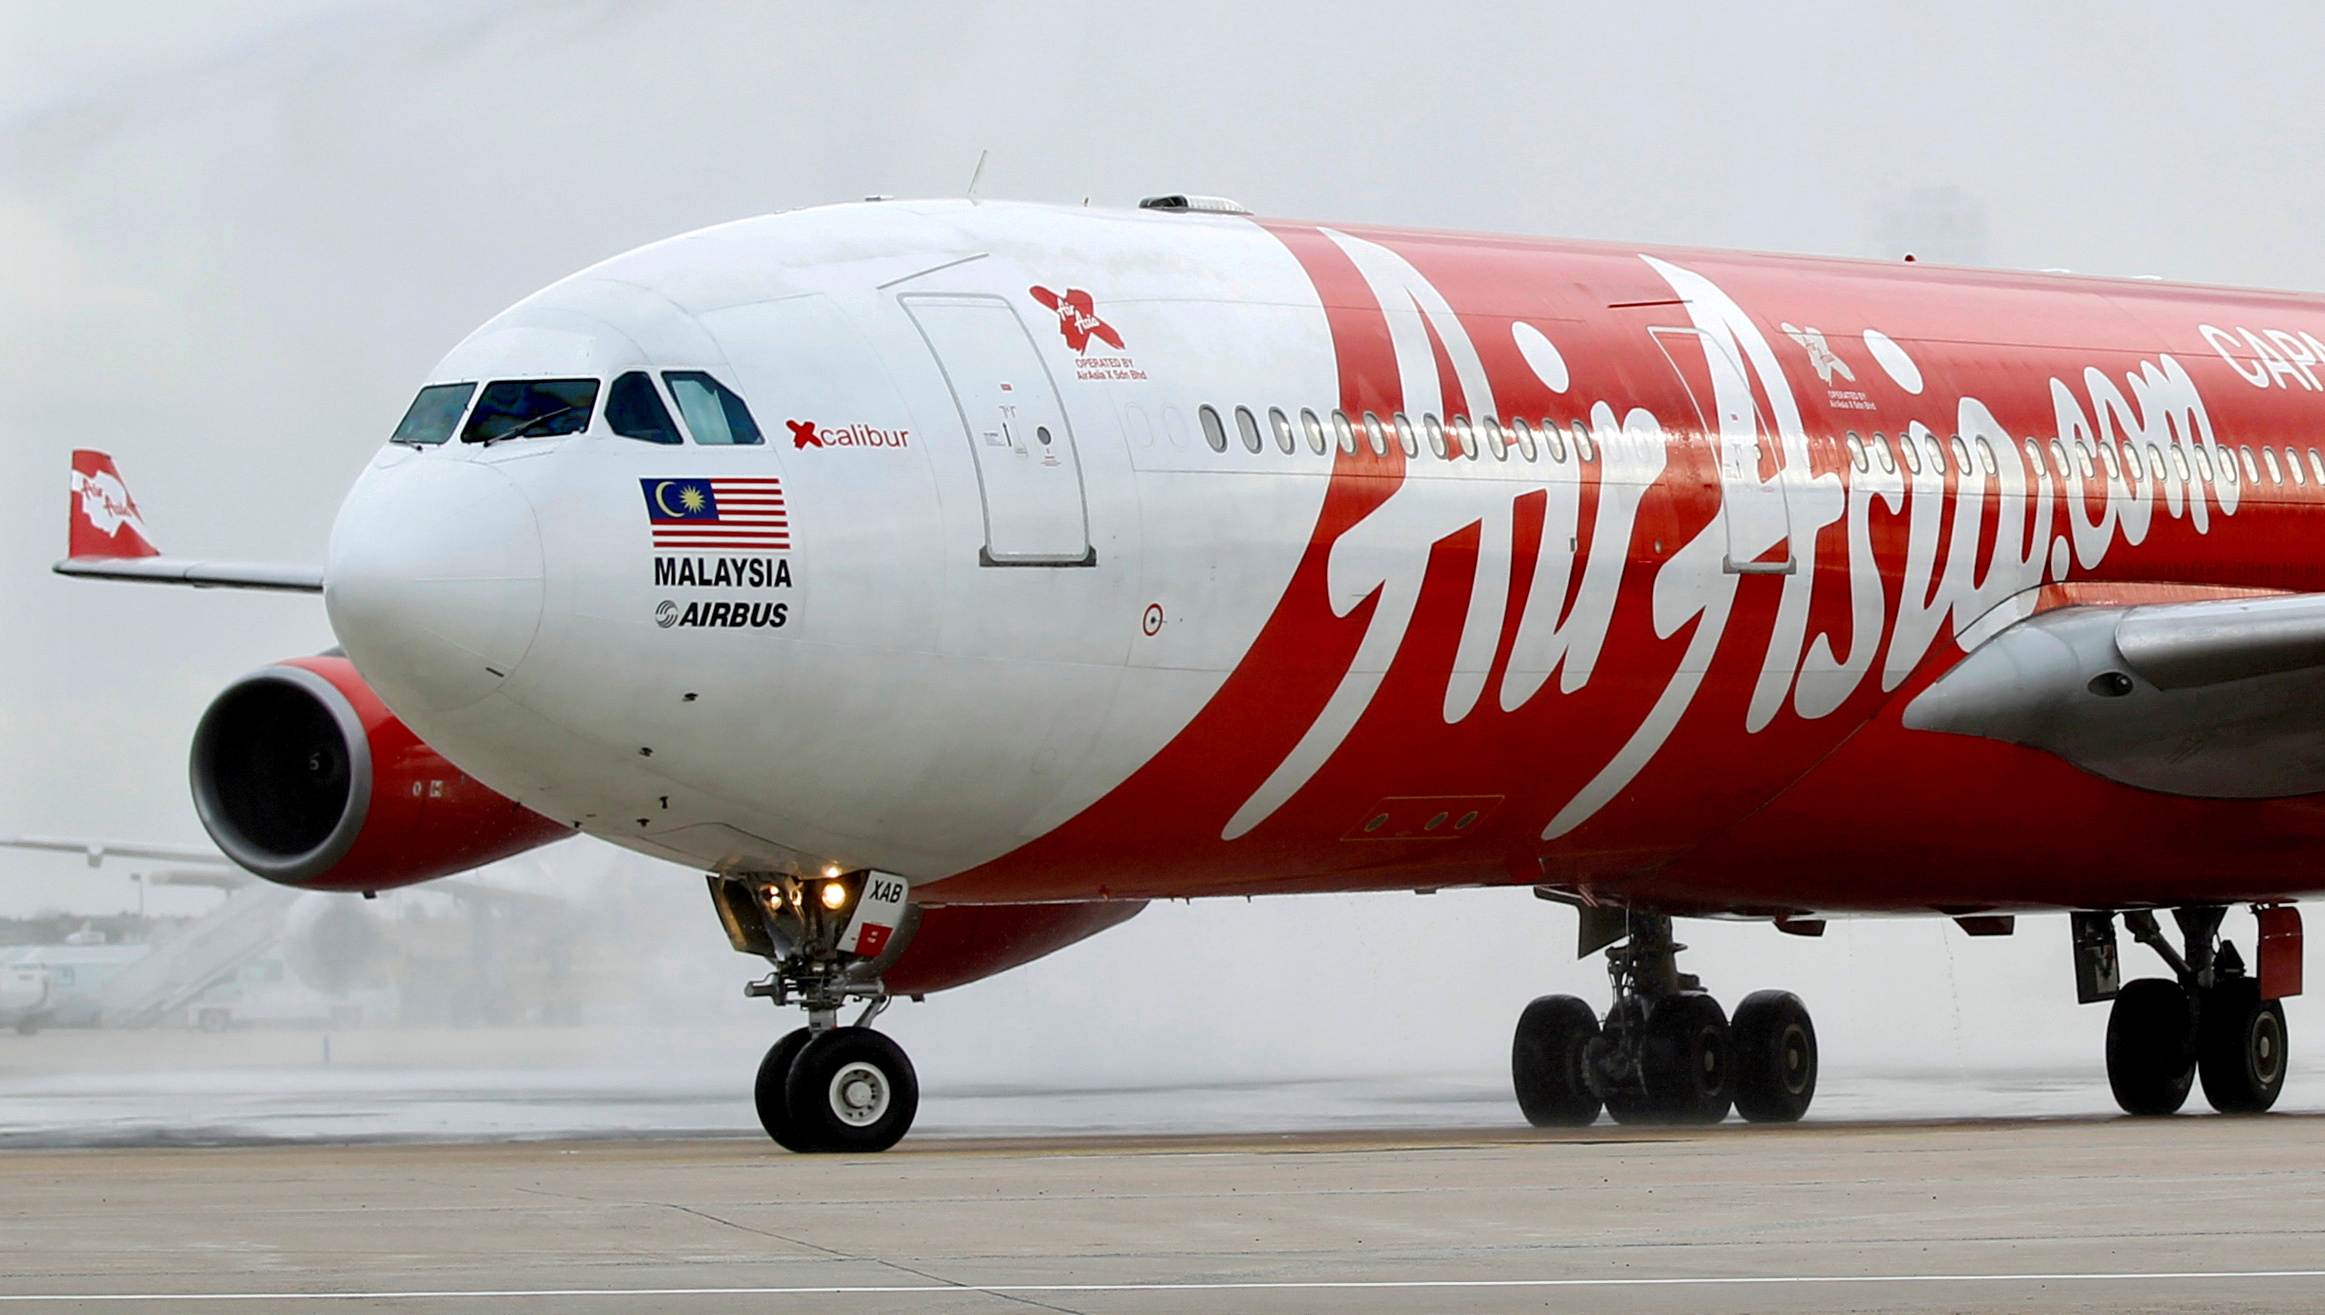 An AirAsia X  Airbus A340 passenger jet arrives on its inaugural flight from Kuala Lumpur to Paris Orly Airport  in this February 14, 2011. REUTERS/Charles Platiau